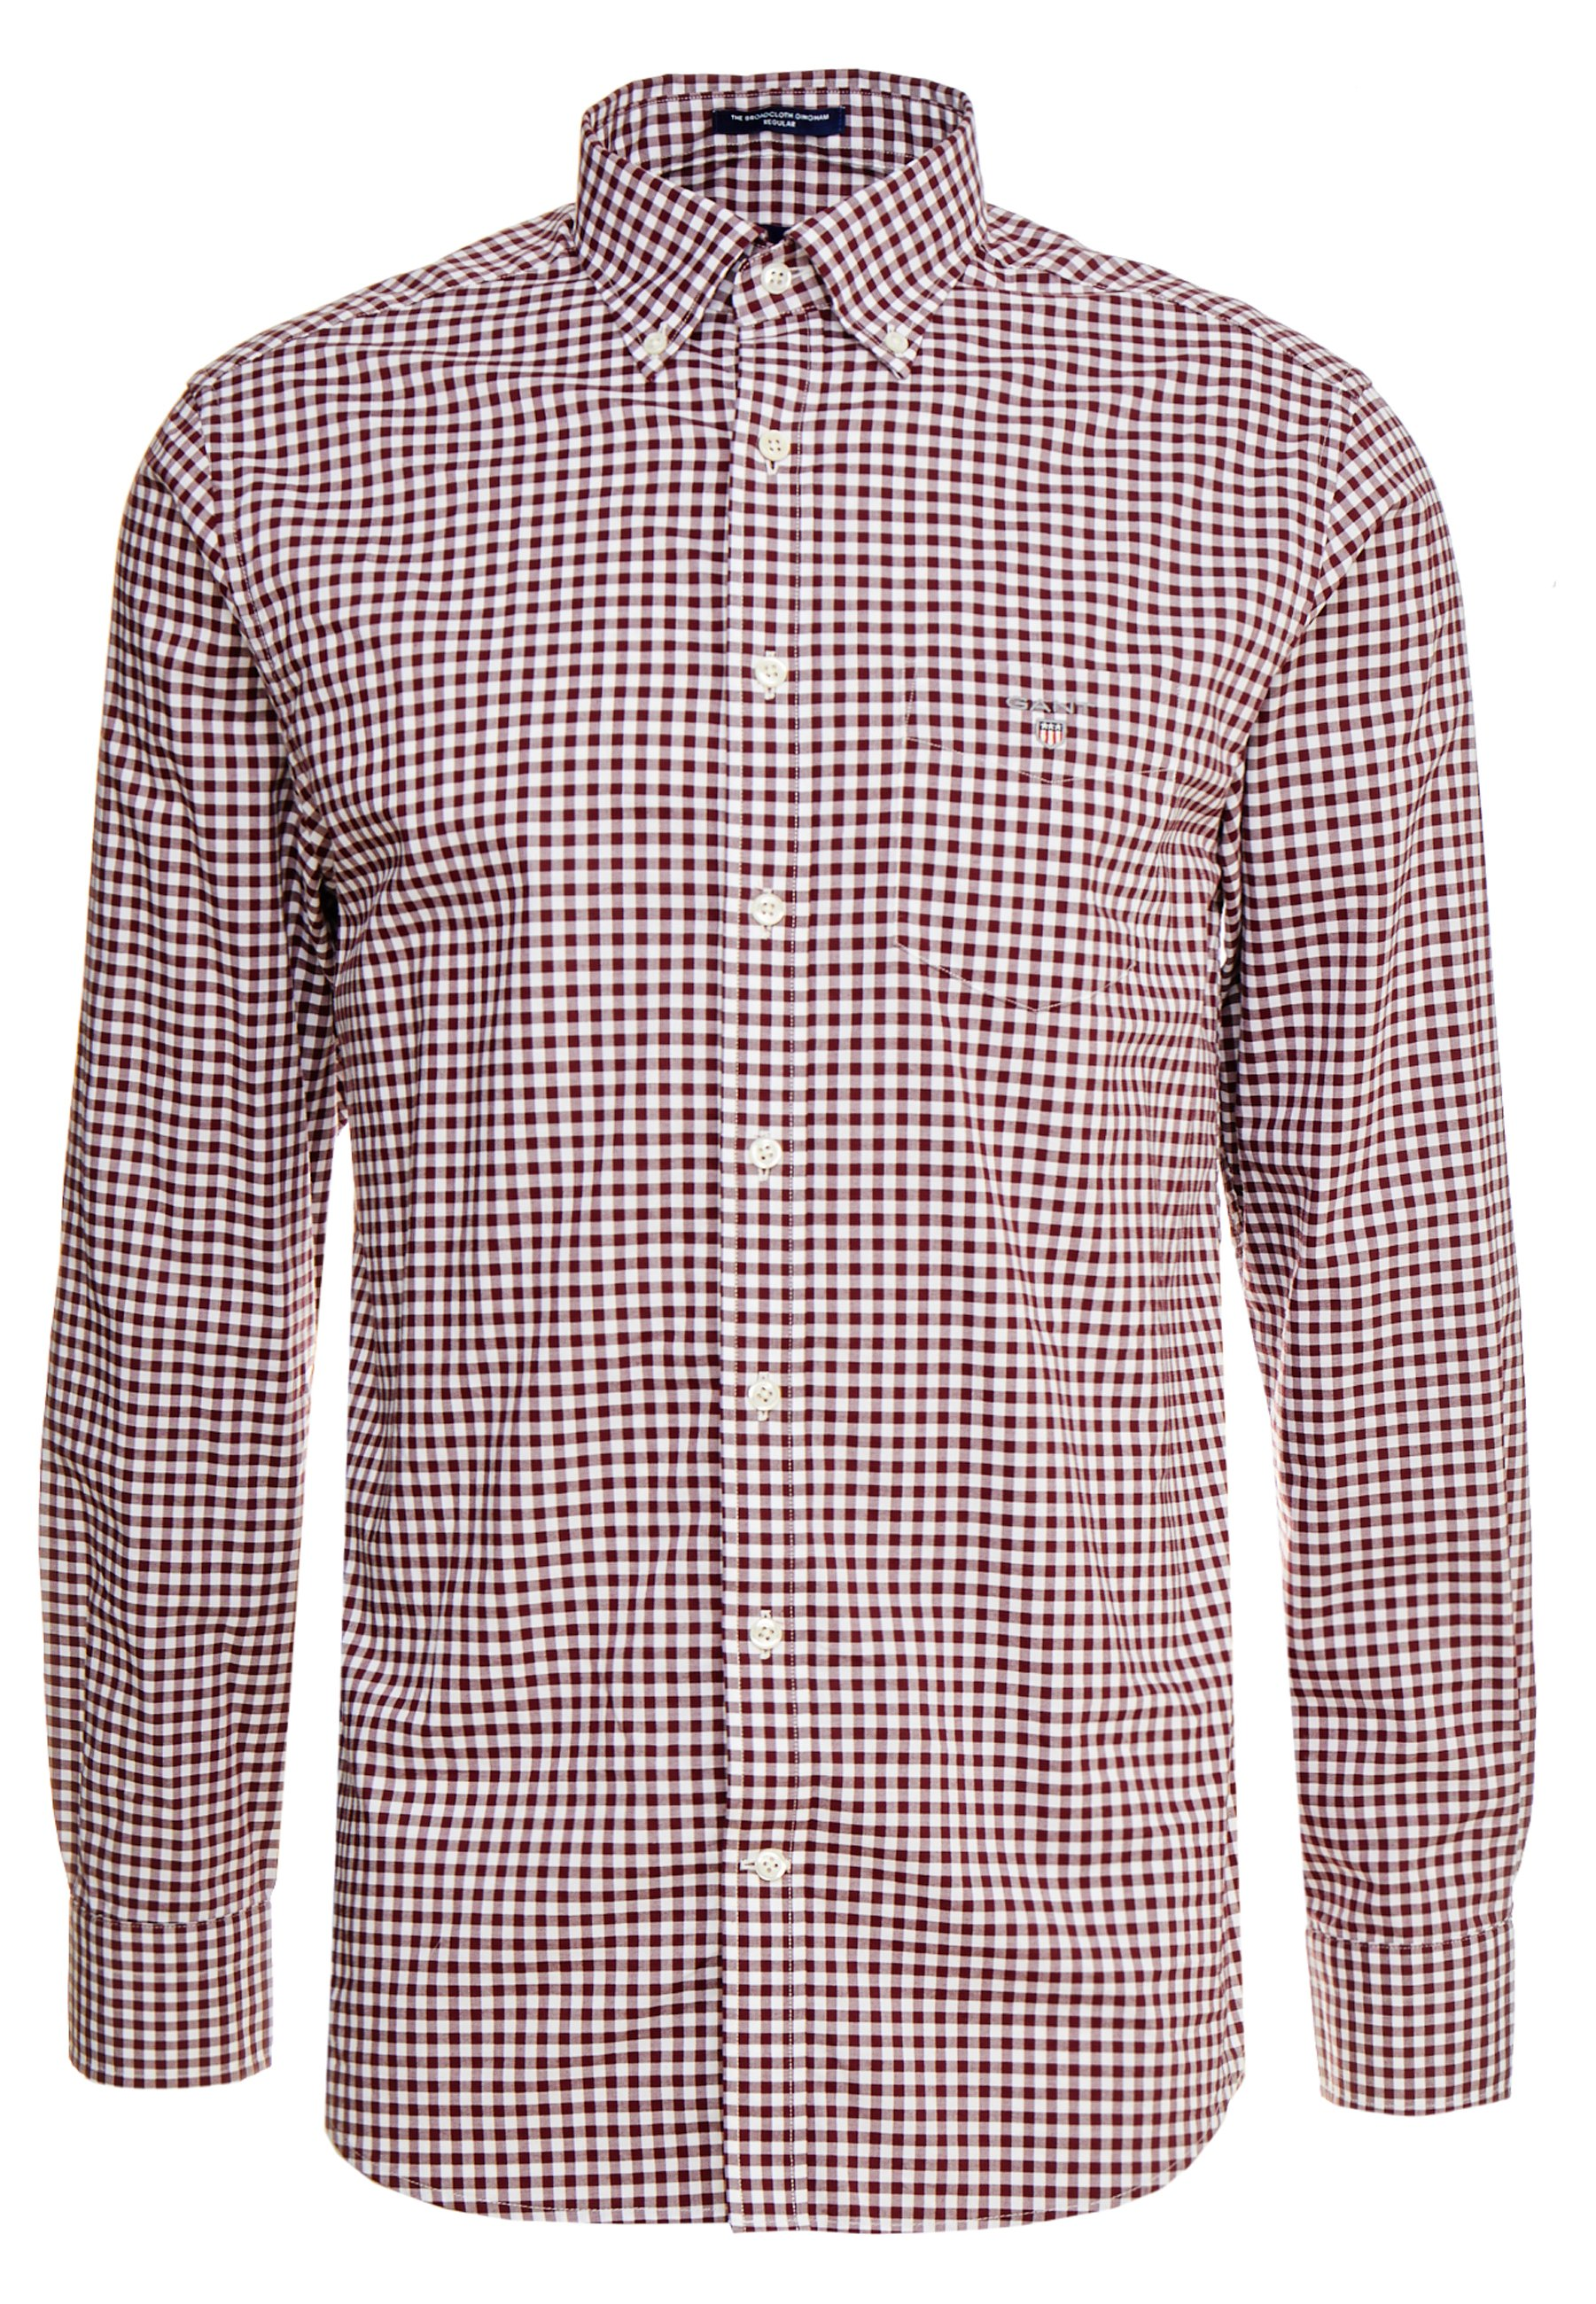 Gant The Broadcloth Gingham - Skjorte Port Red/vinrød